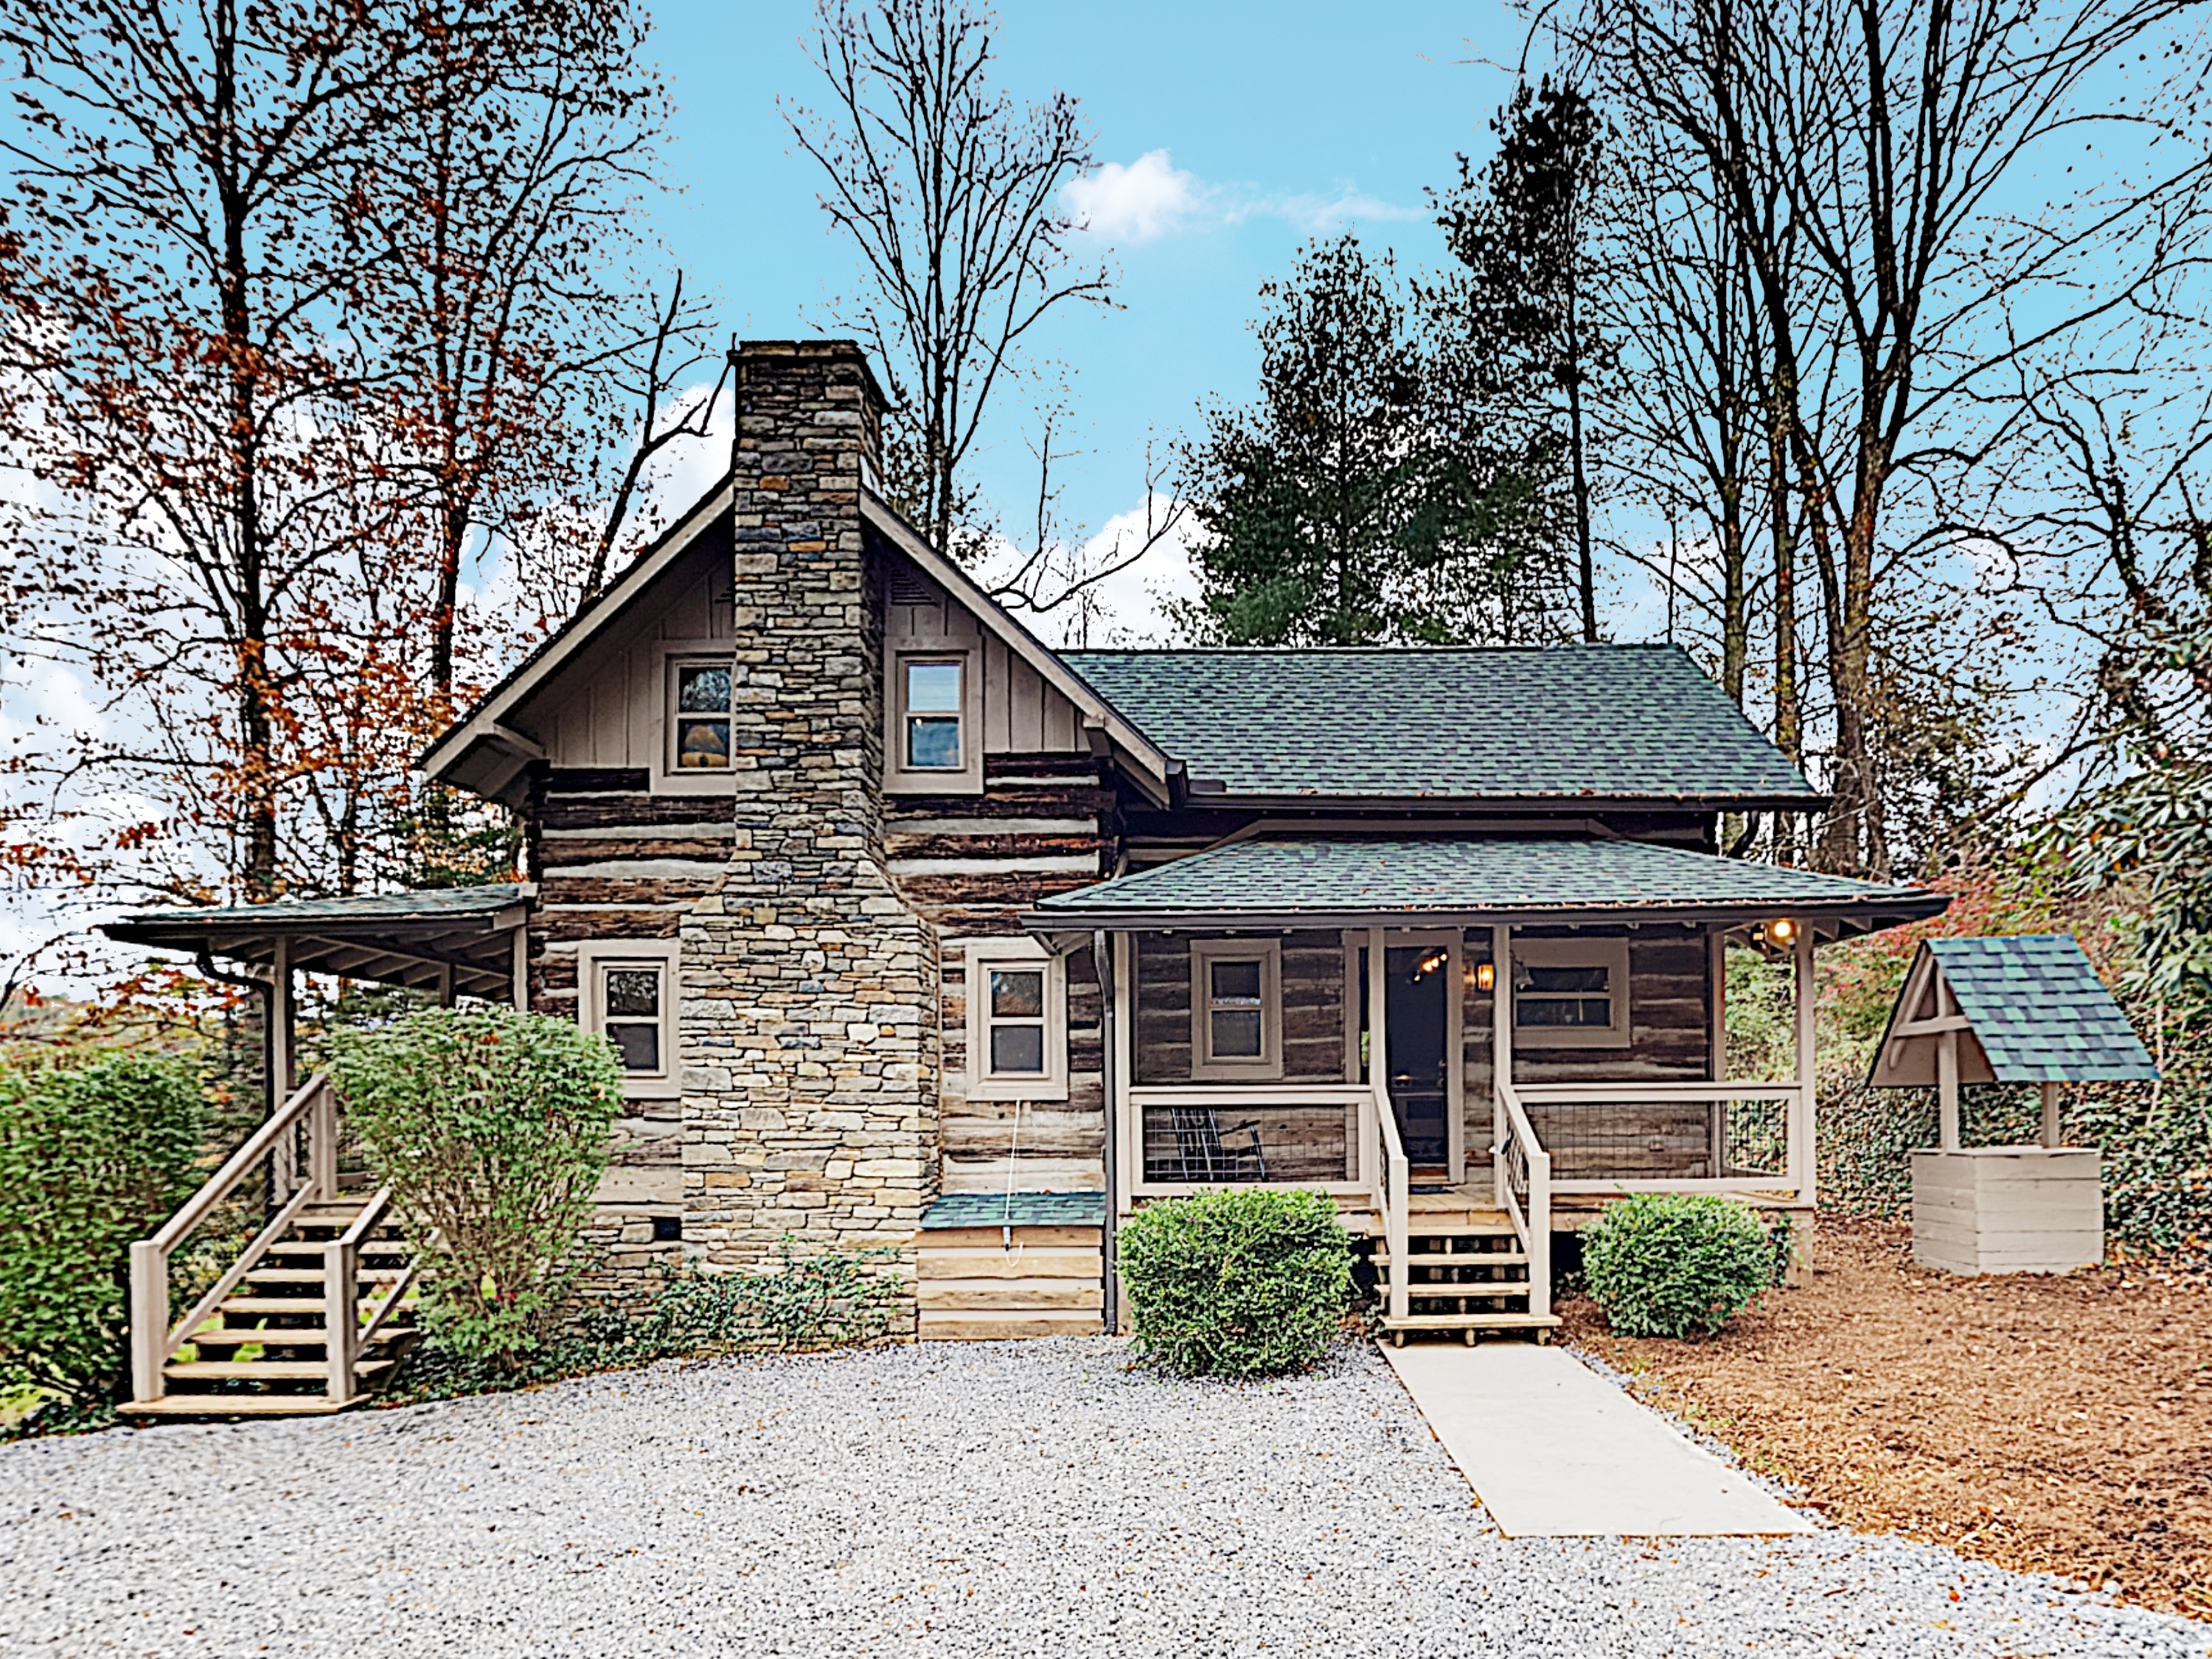 Fletcher NC Vacation Rental Welcome! This cabin